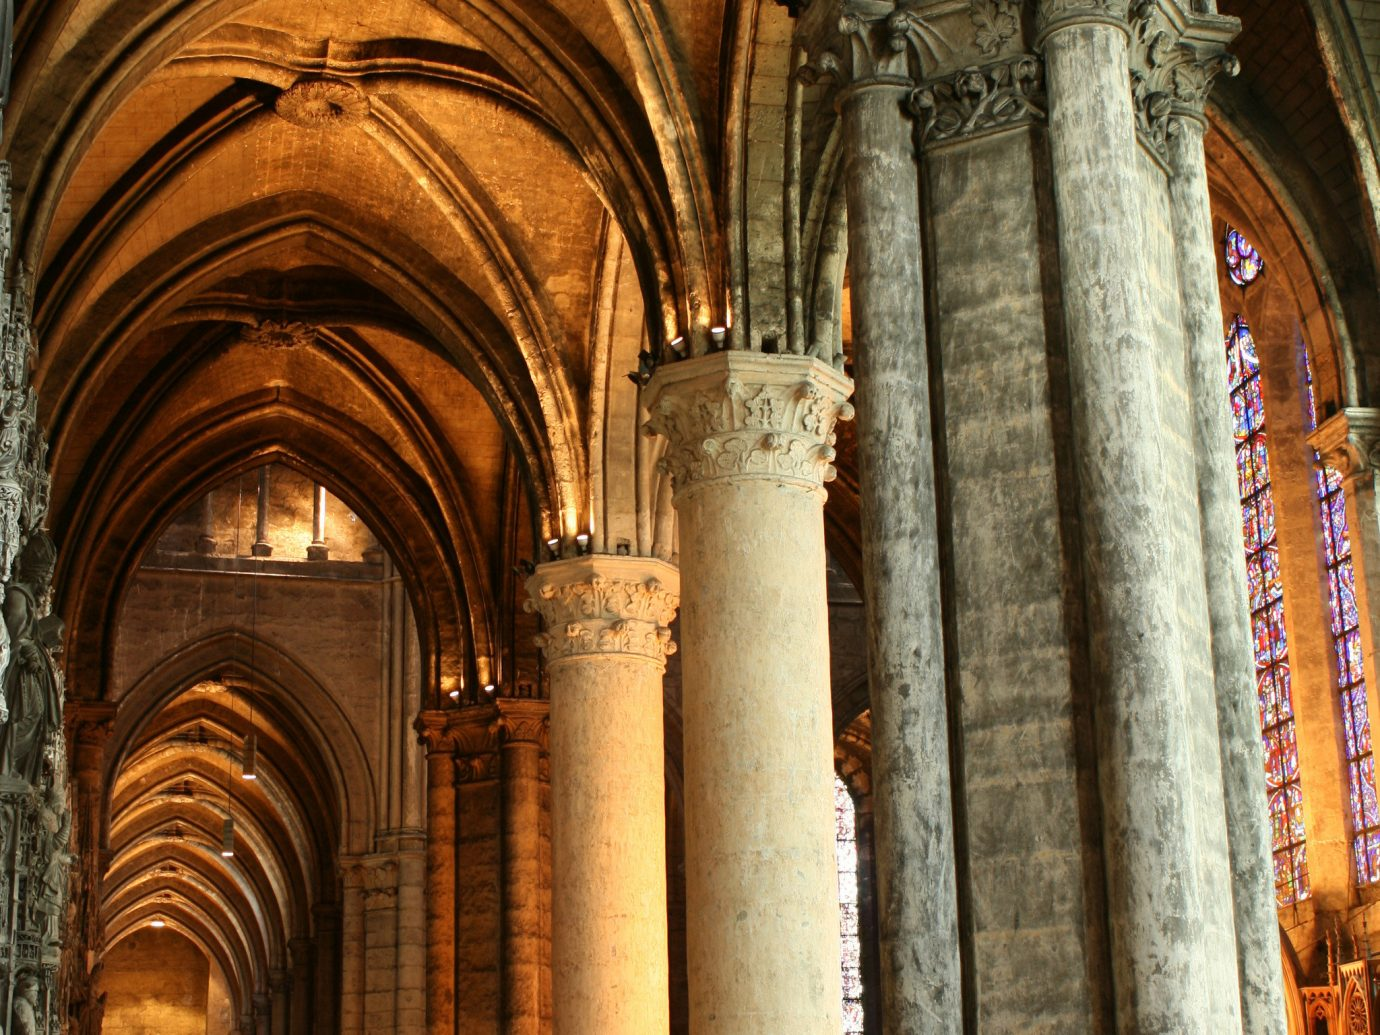 Budget building structure place of worship cathedral Architecture arch ancient history basilica byzantine architecture Church gothic architecture temple ancient roman architecture monastery column symmetry arcade colonnade